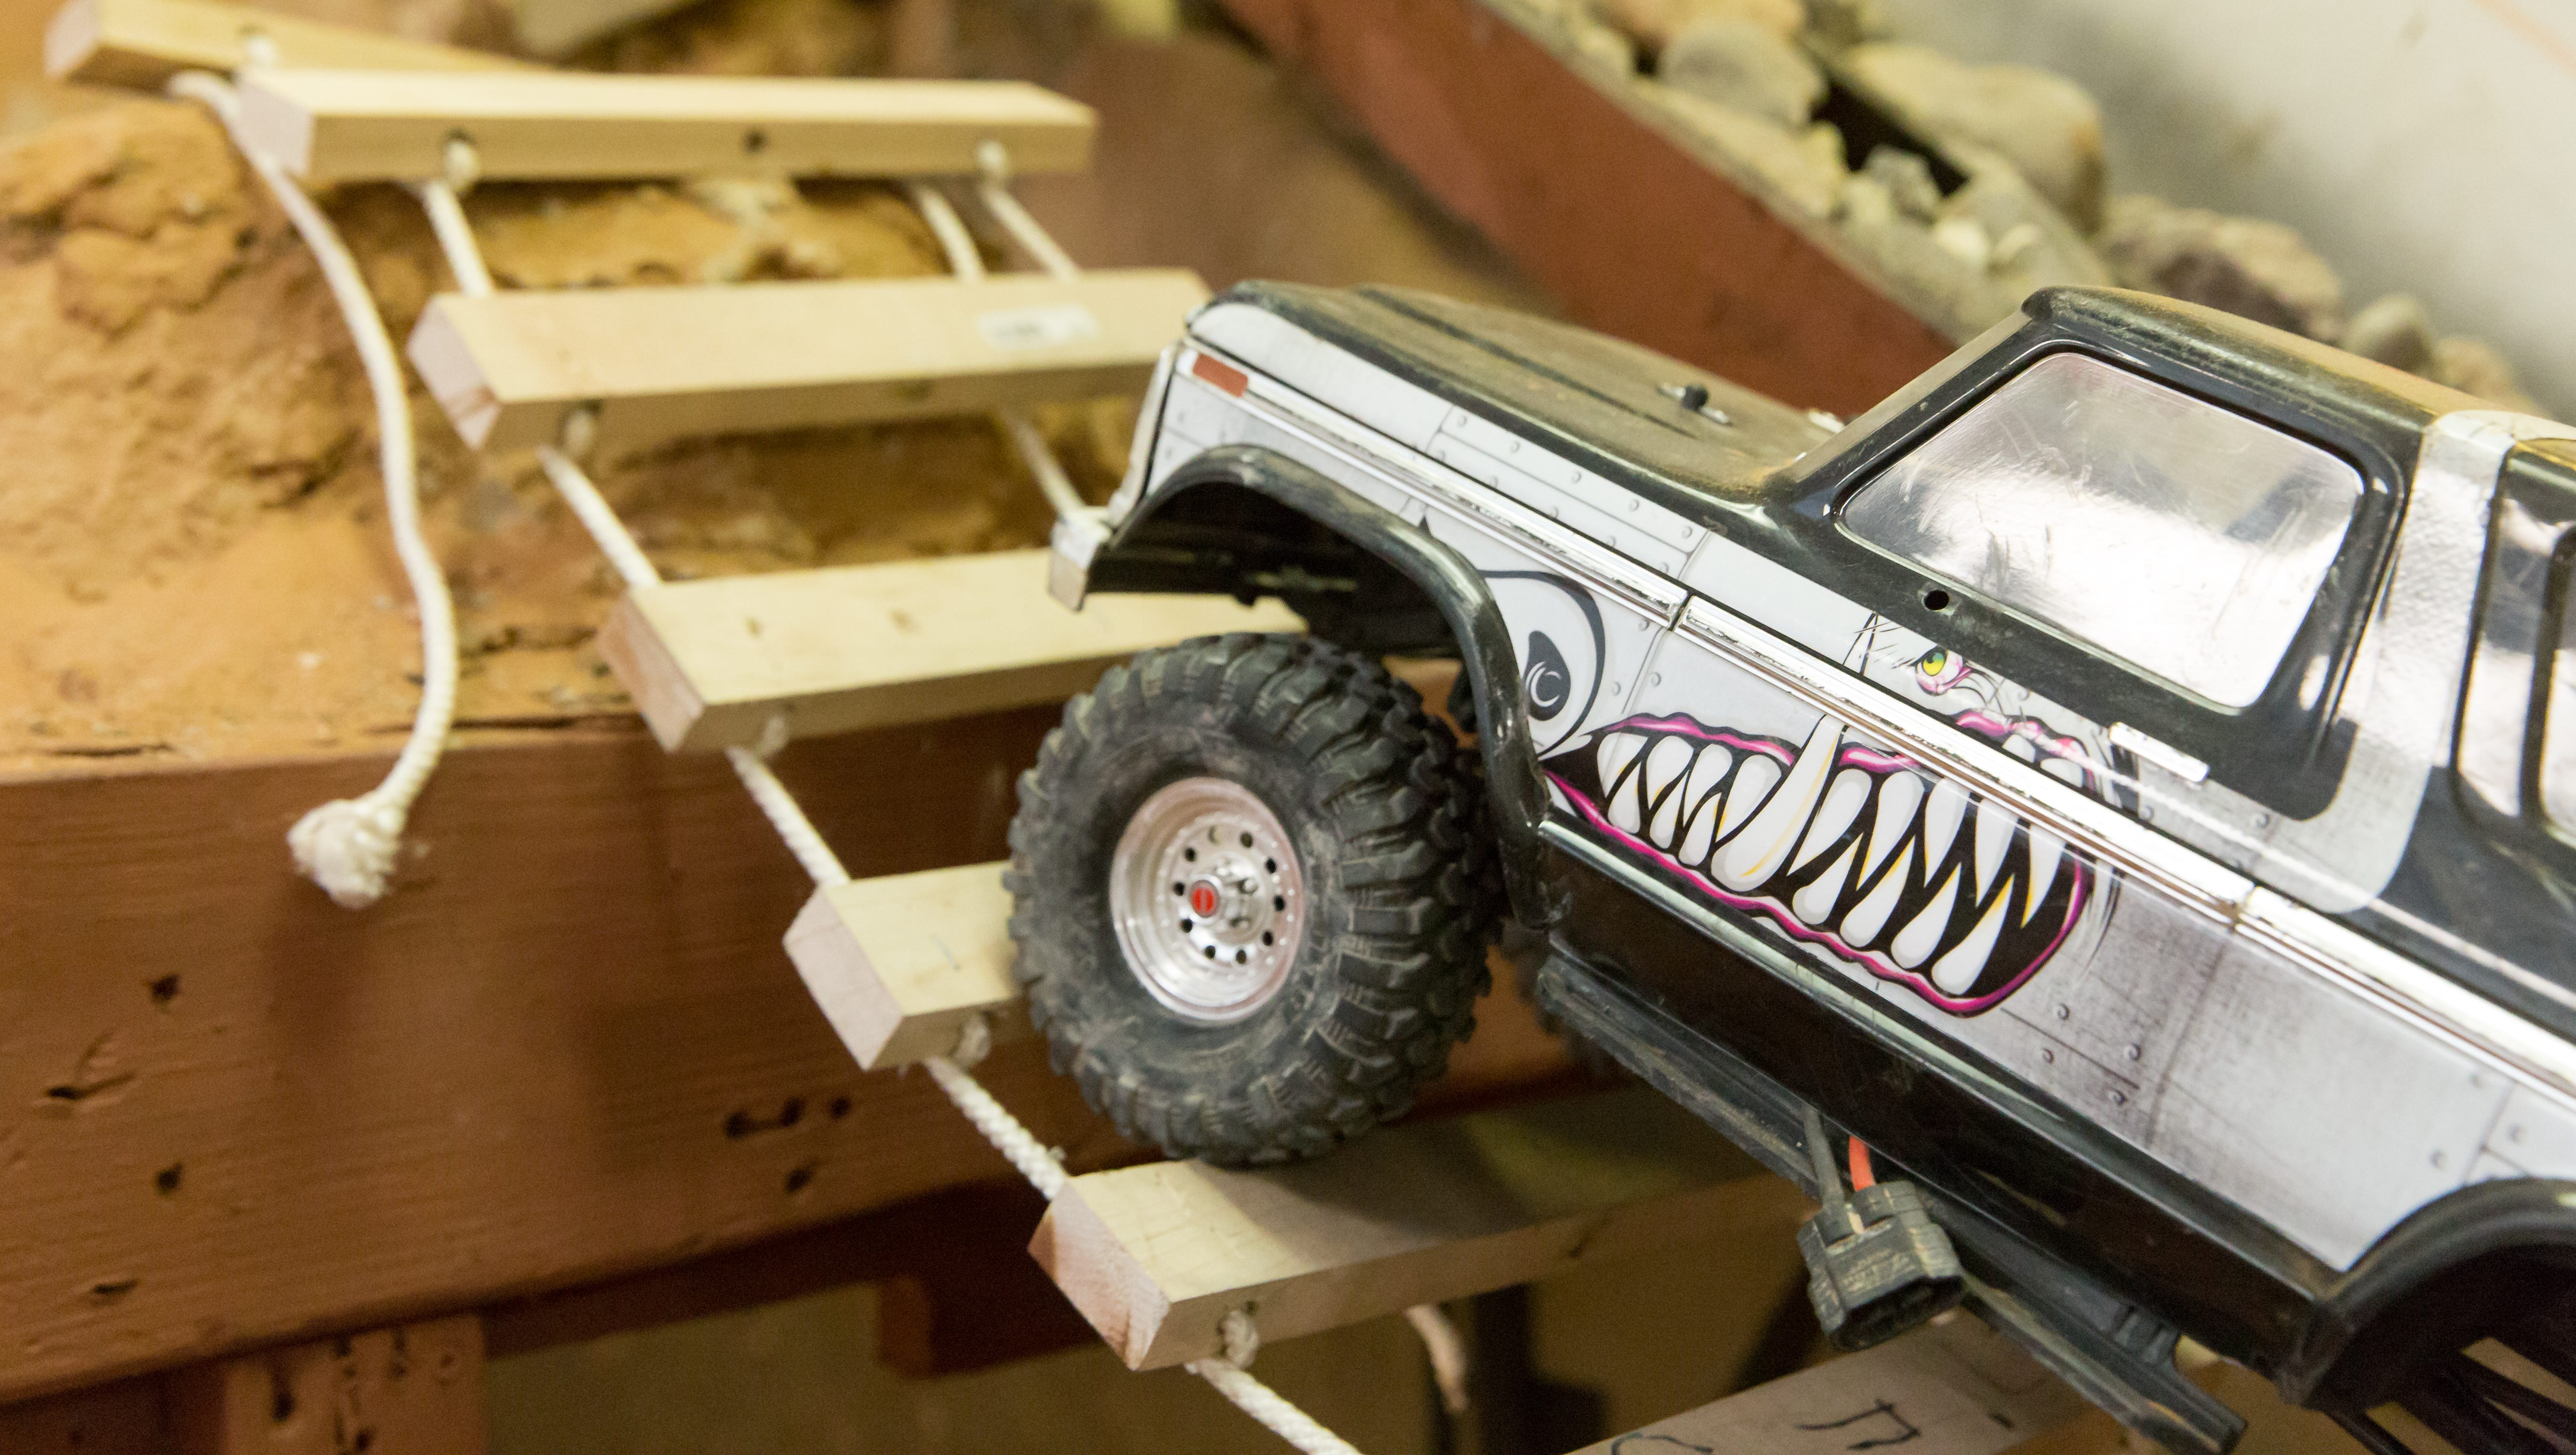 Las Cruces Welcomes Indoor Race Track For Radio Control Cars